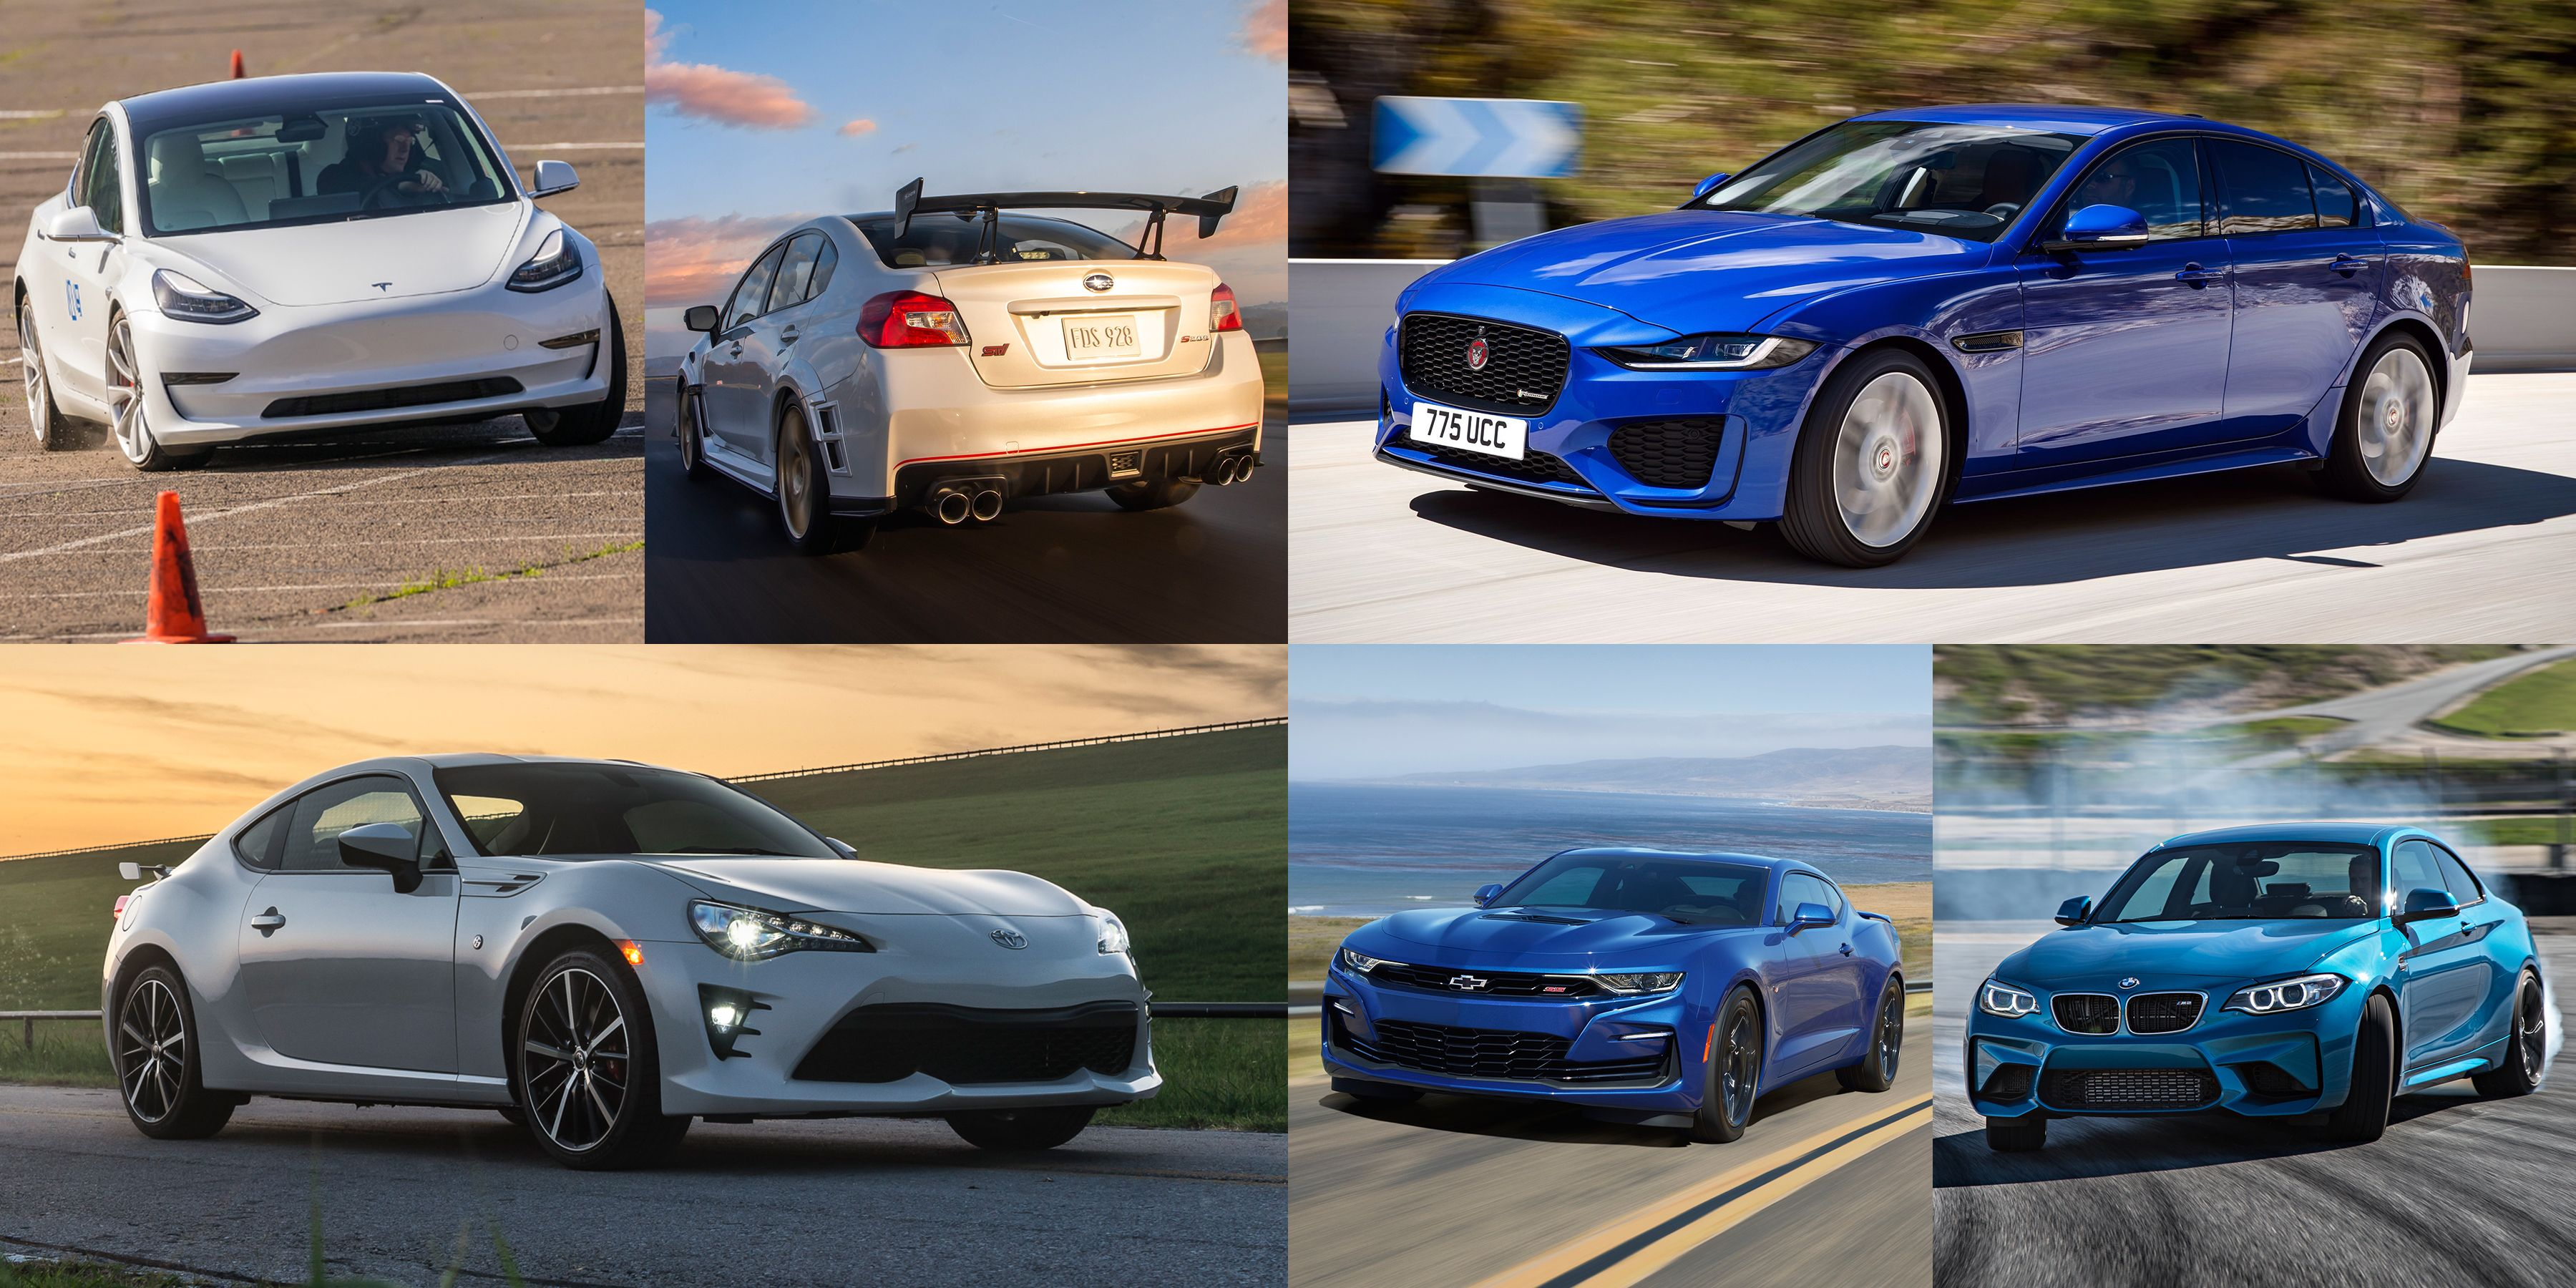 The 20 Best Sports (and Sporty) Cars You Can Buy for under $50,000